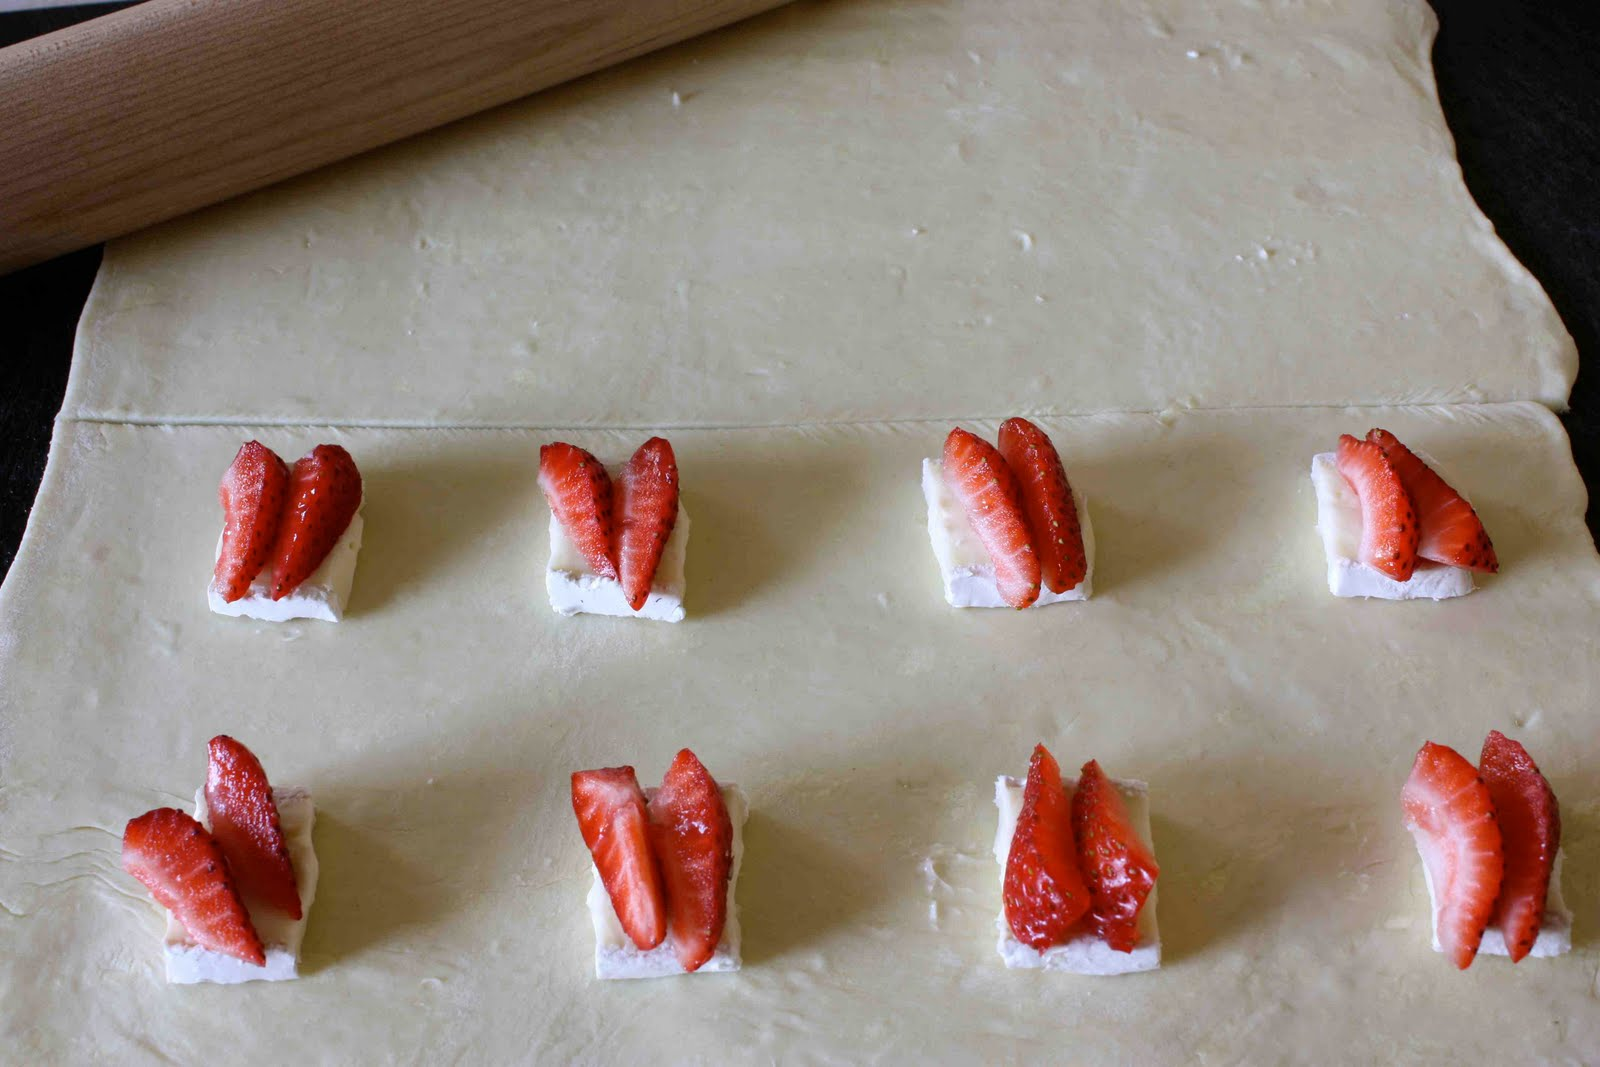 Brie Cheese & Strawberries